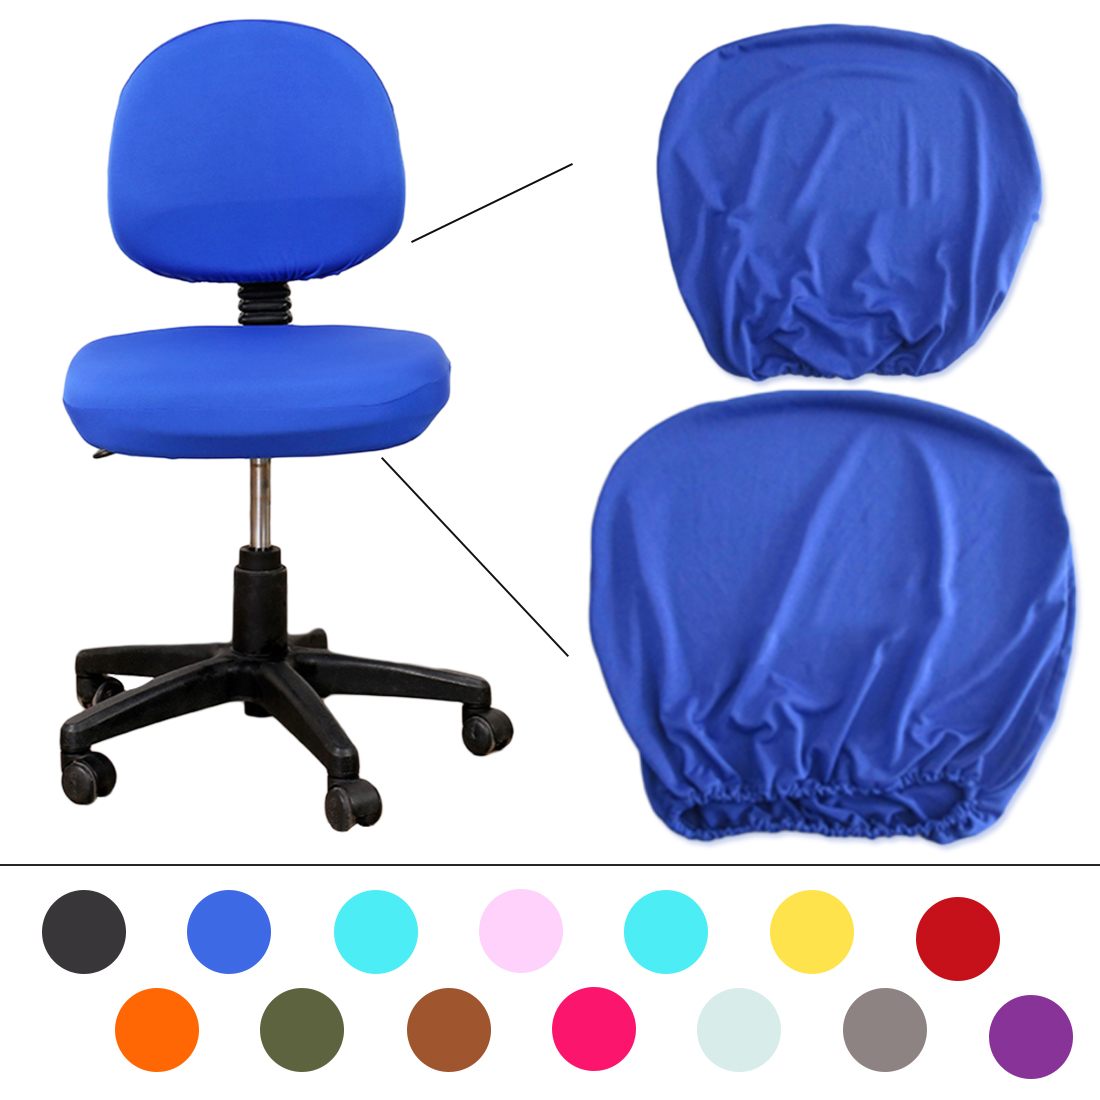 Elastic Fabric Spandex Chair Covers For Housse De Chaise Mariage Office Chair Computer Chair  14 Colors Universal Size